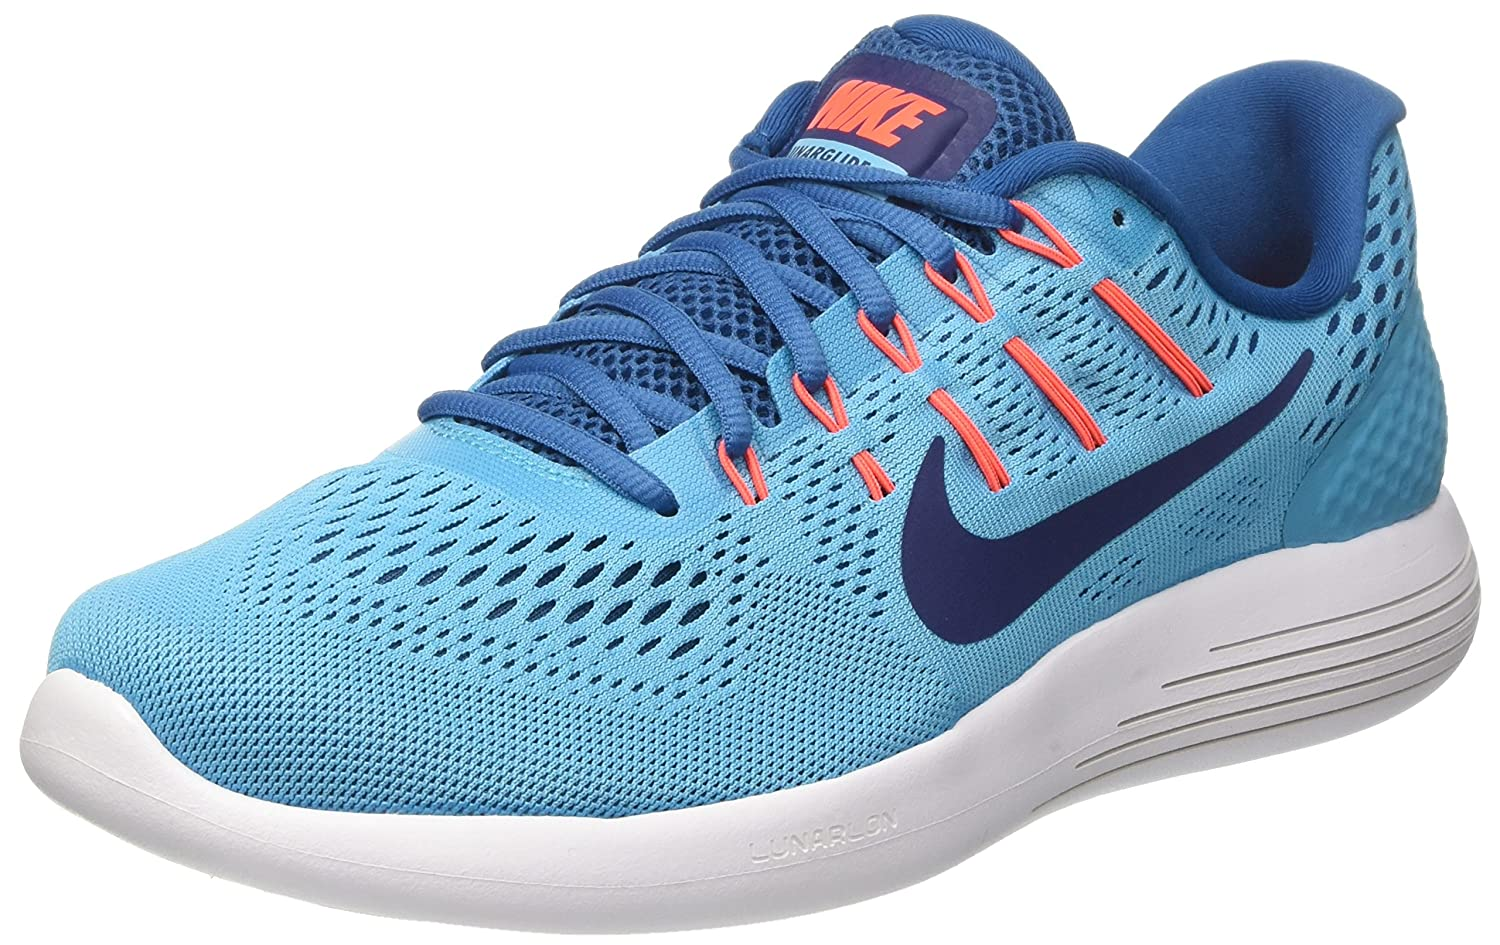 Nike Mens Lunarglide 8, Black / White - Anthracite B01JZYN9UE 9 D(M) US|Chlorine Blue/Binary Blue